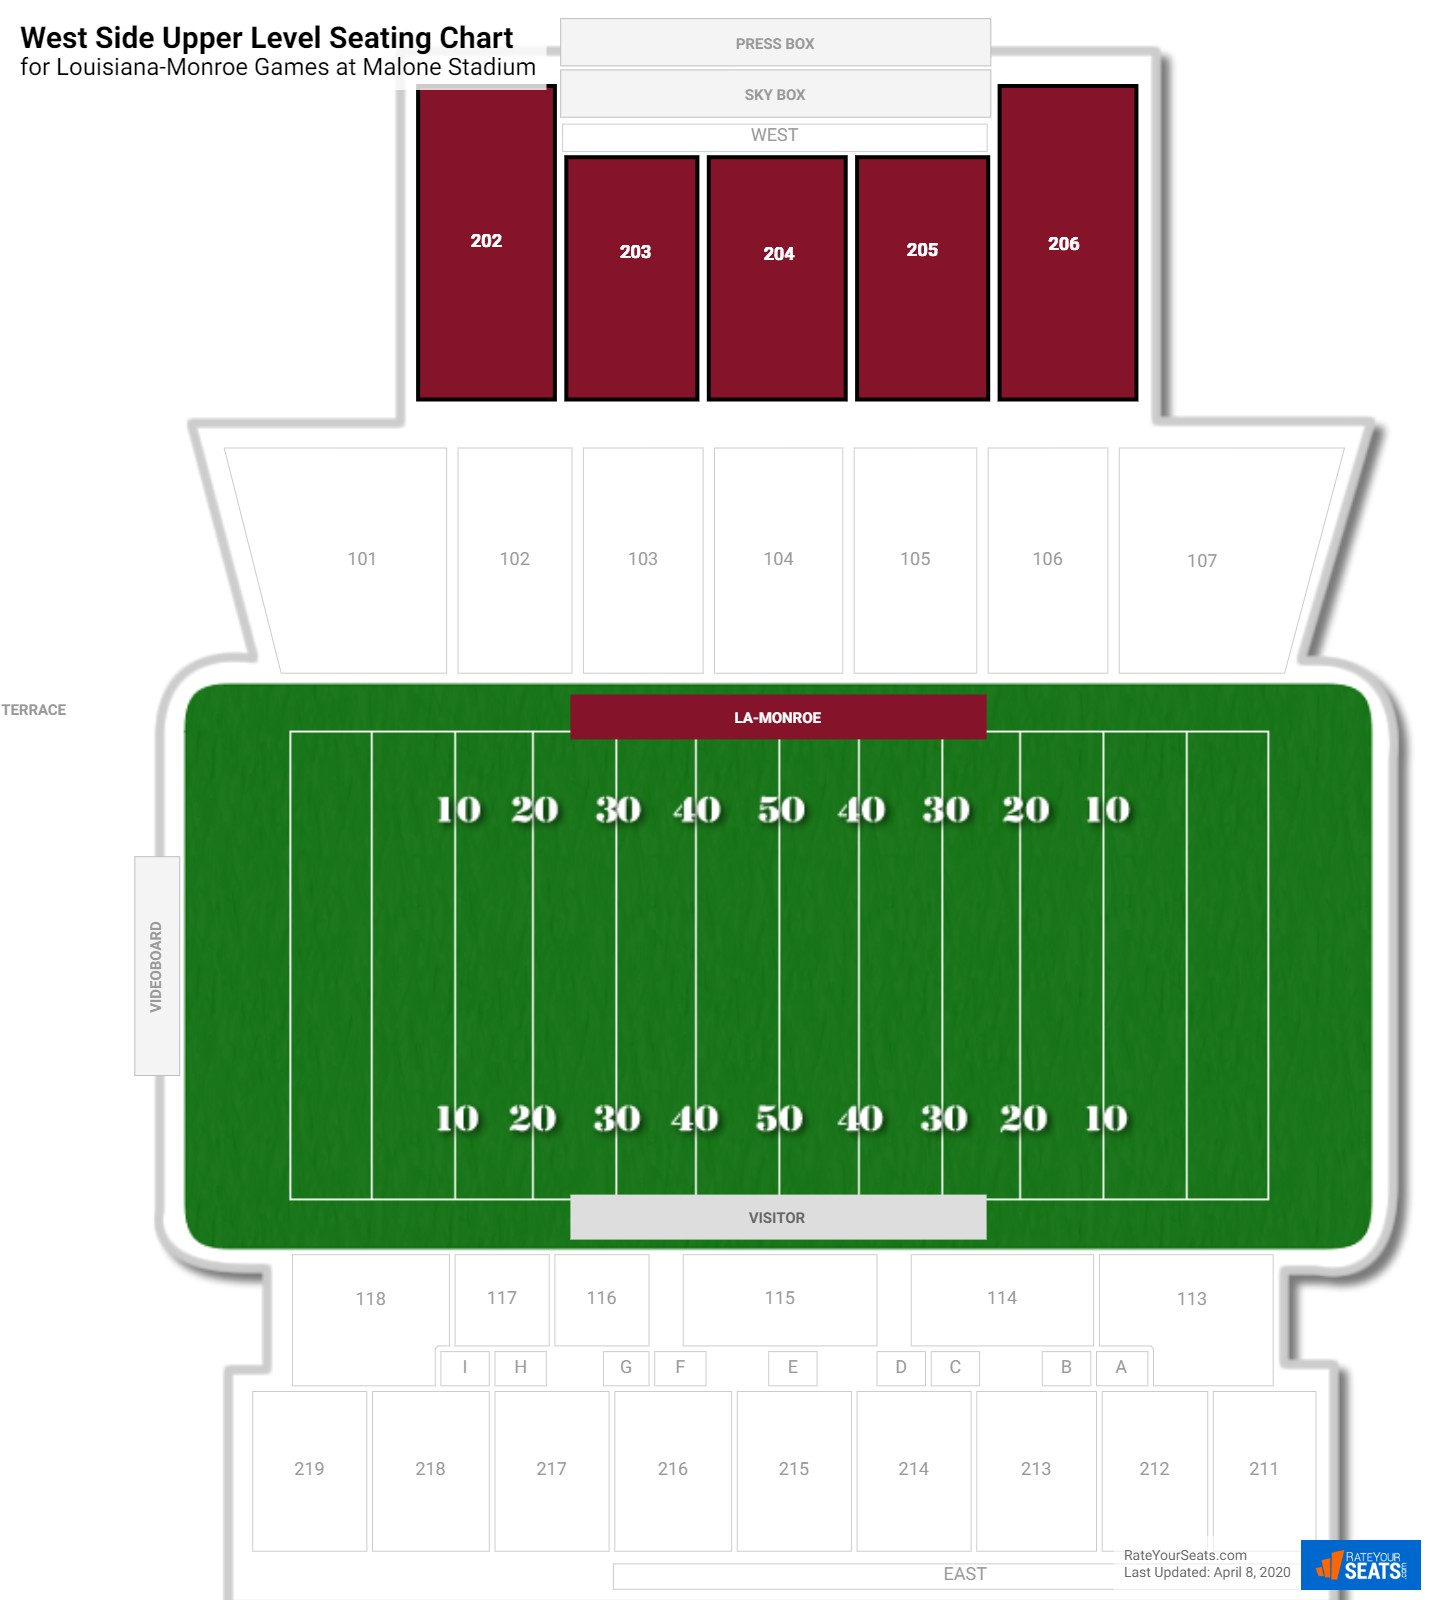 Malone Stadium West Side Upper Level seating chart